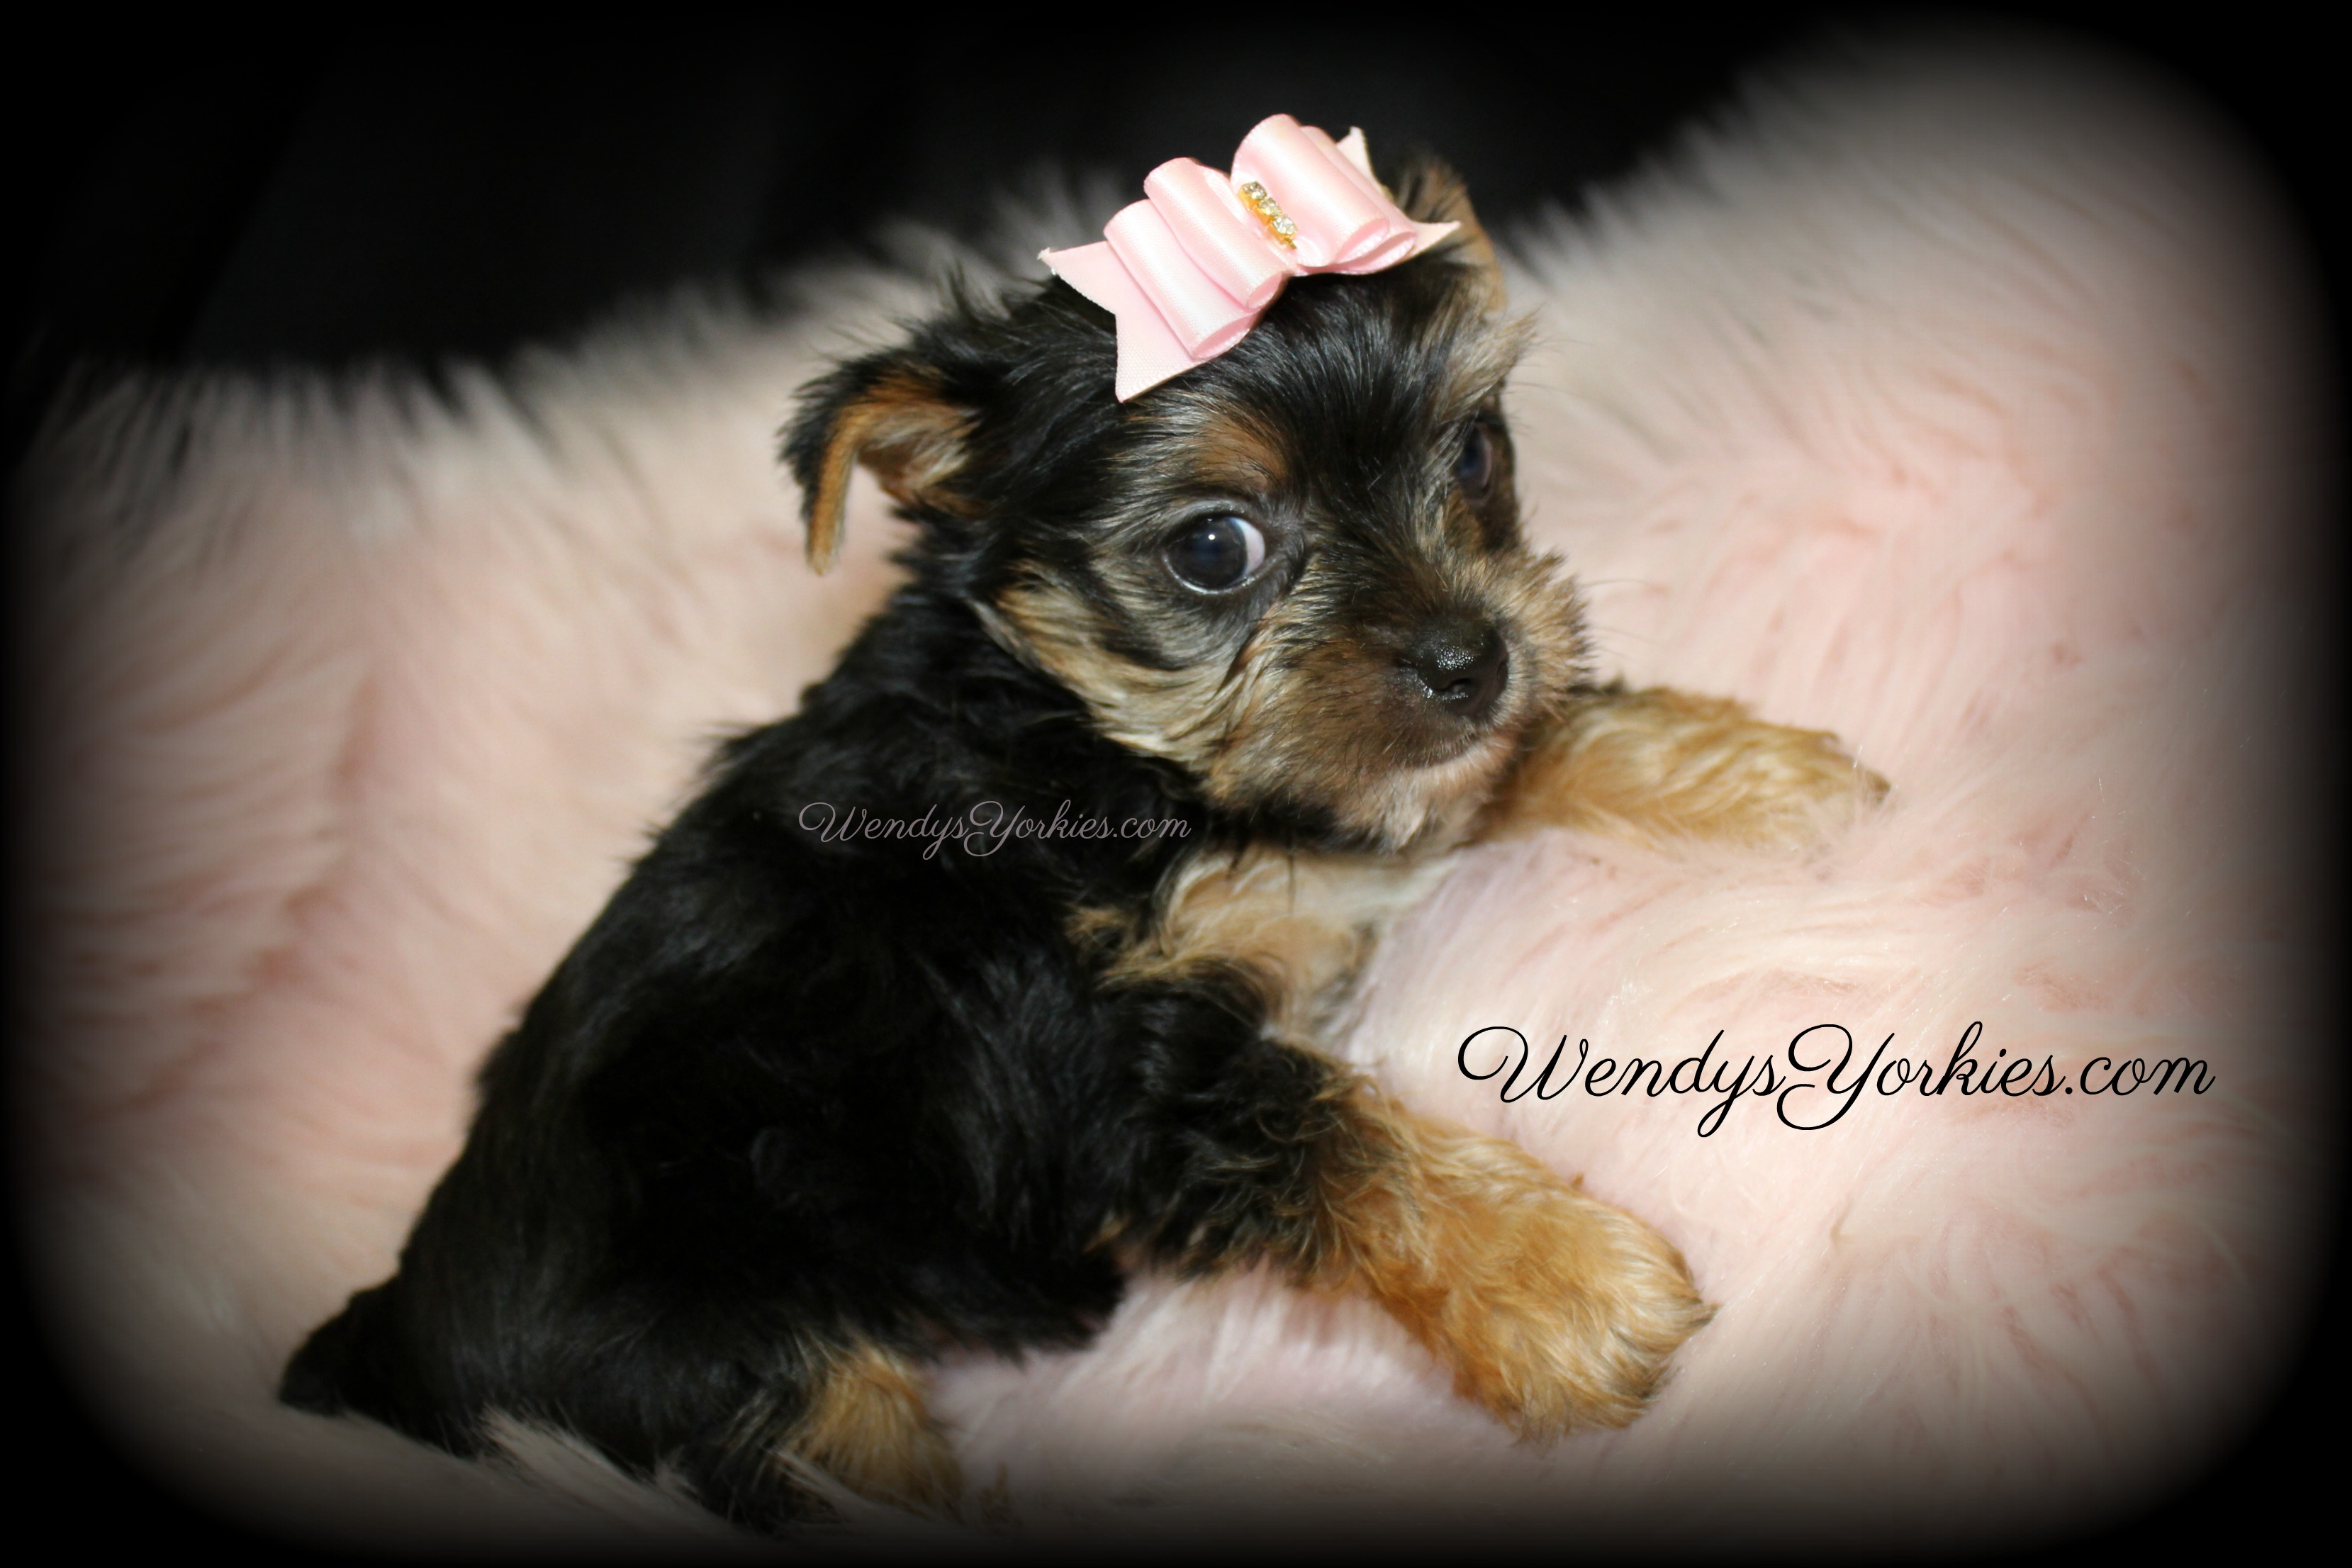 Yorkie puppies for sale in Texas, WendysYOrkies.com, Loulou f1